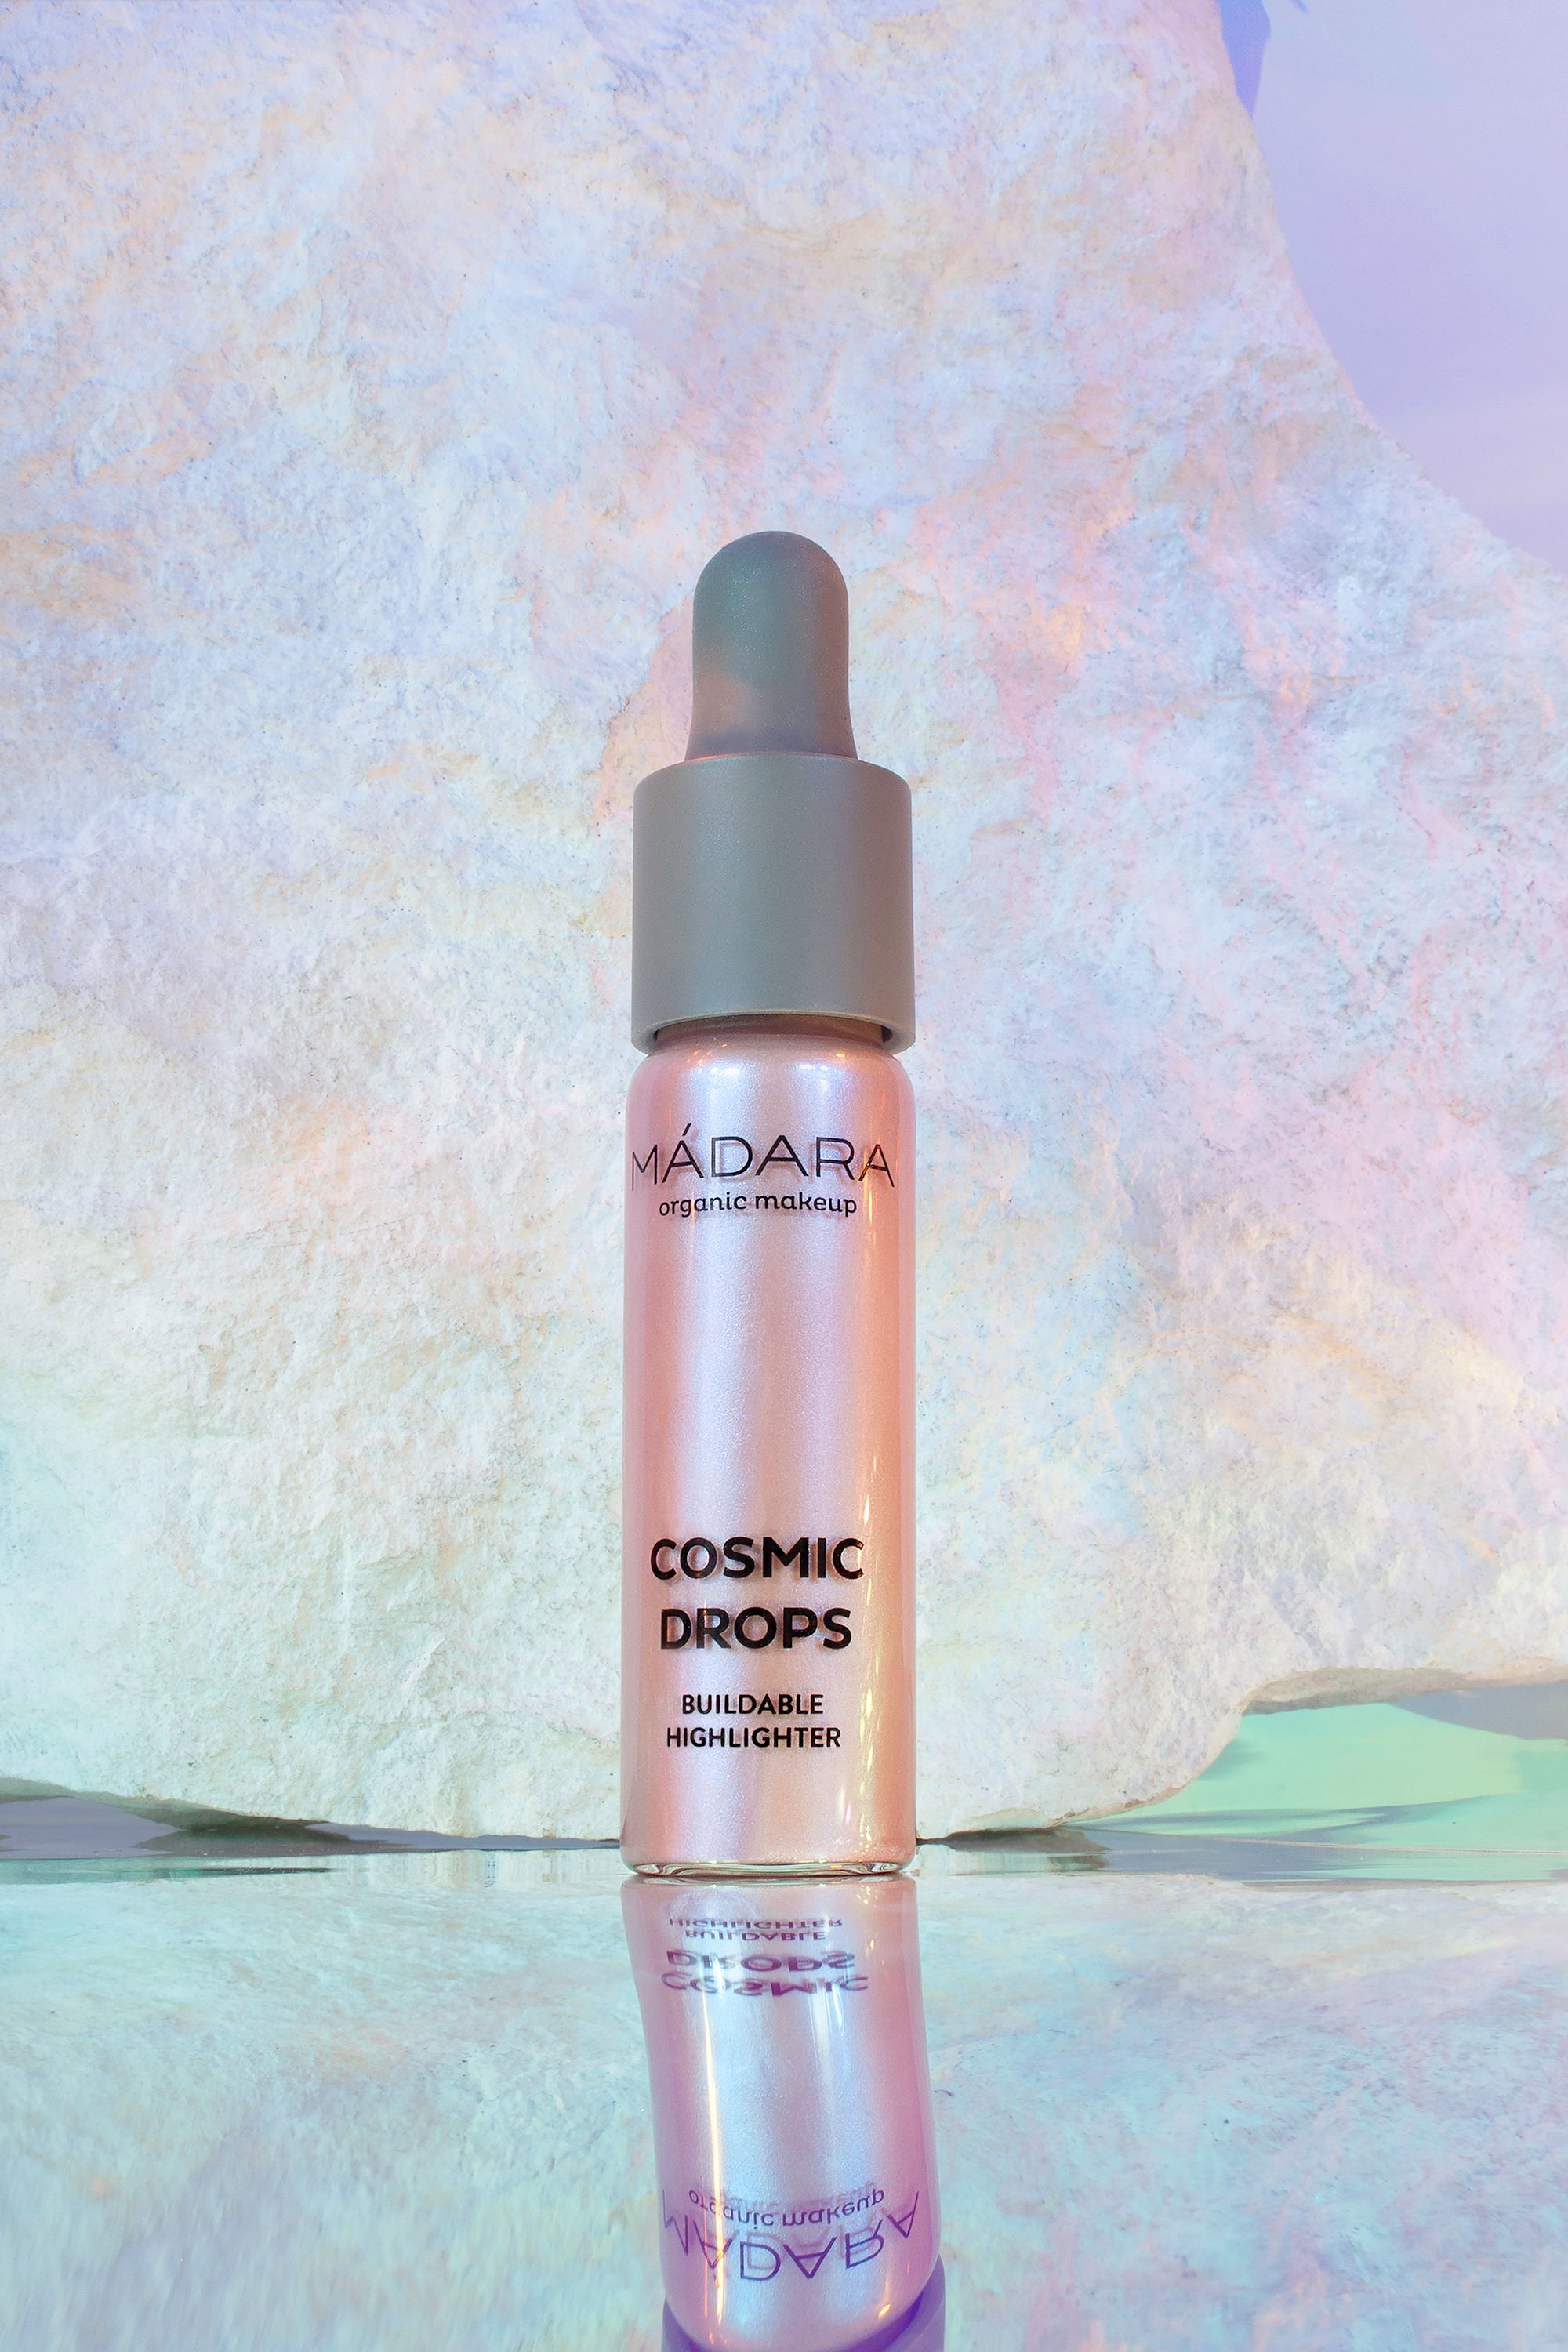 Blissim : Mádara Cosmetics - Highlighter liquide Cosmic Drops - 4 Aurora Borealis